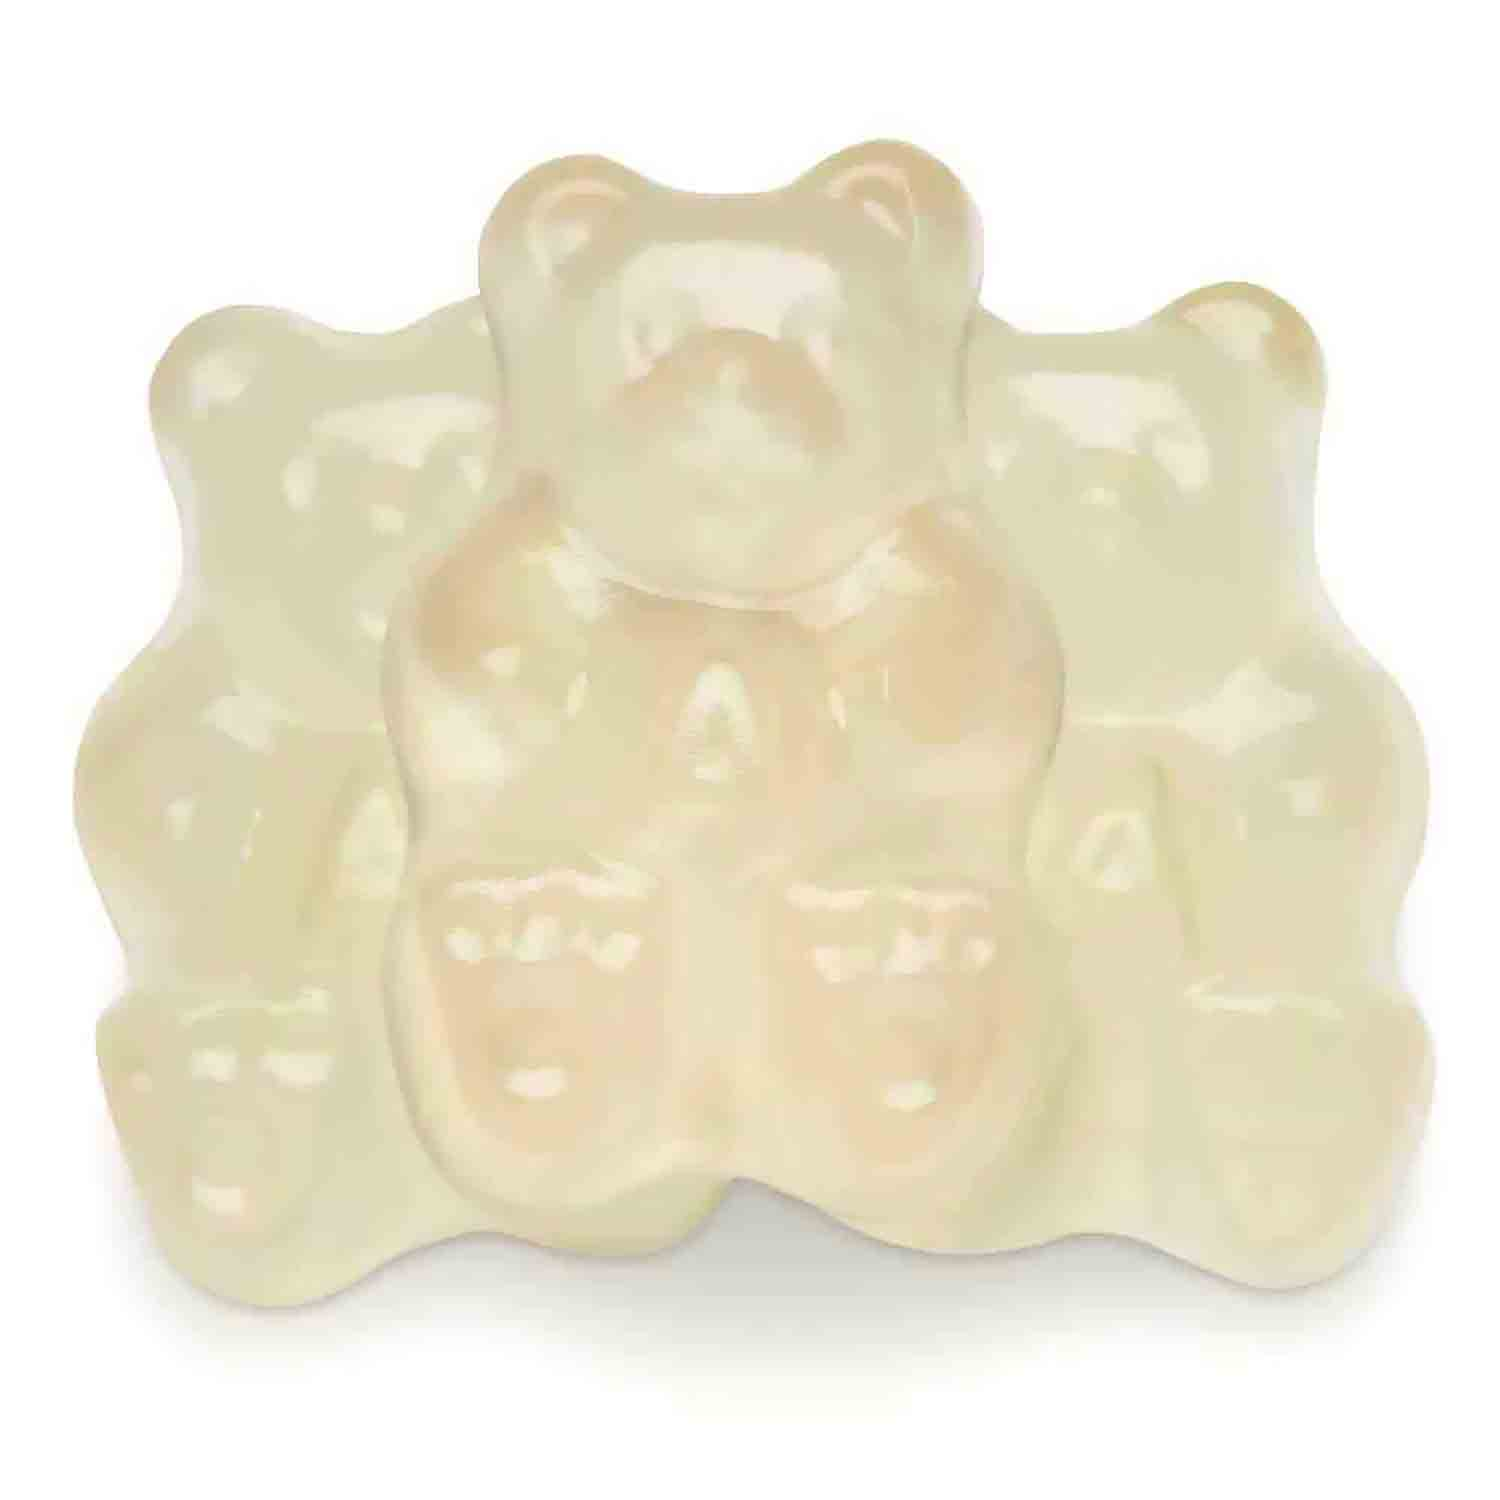 Pineapple Gummi Bears